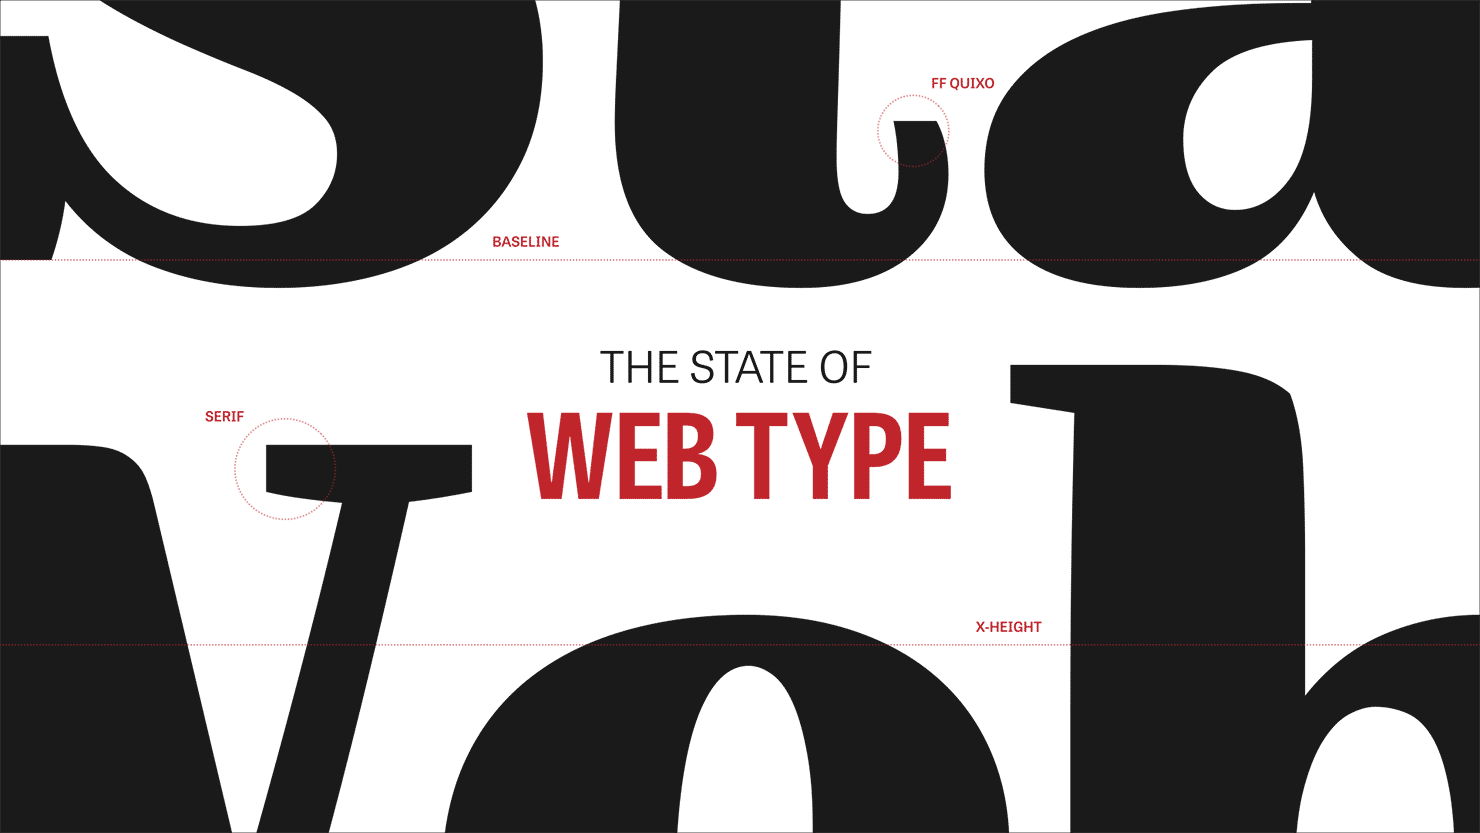 The State of Web Type title slide